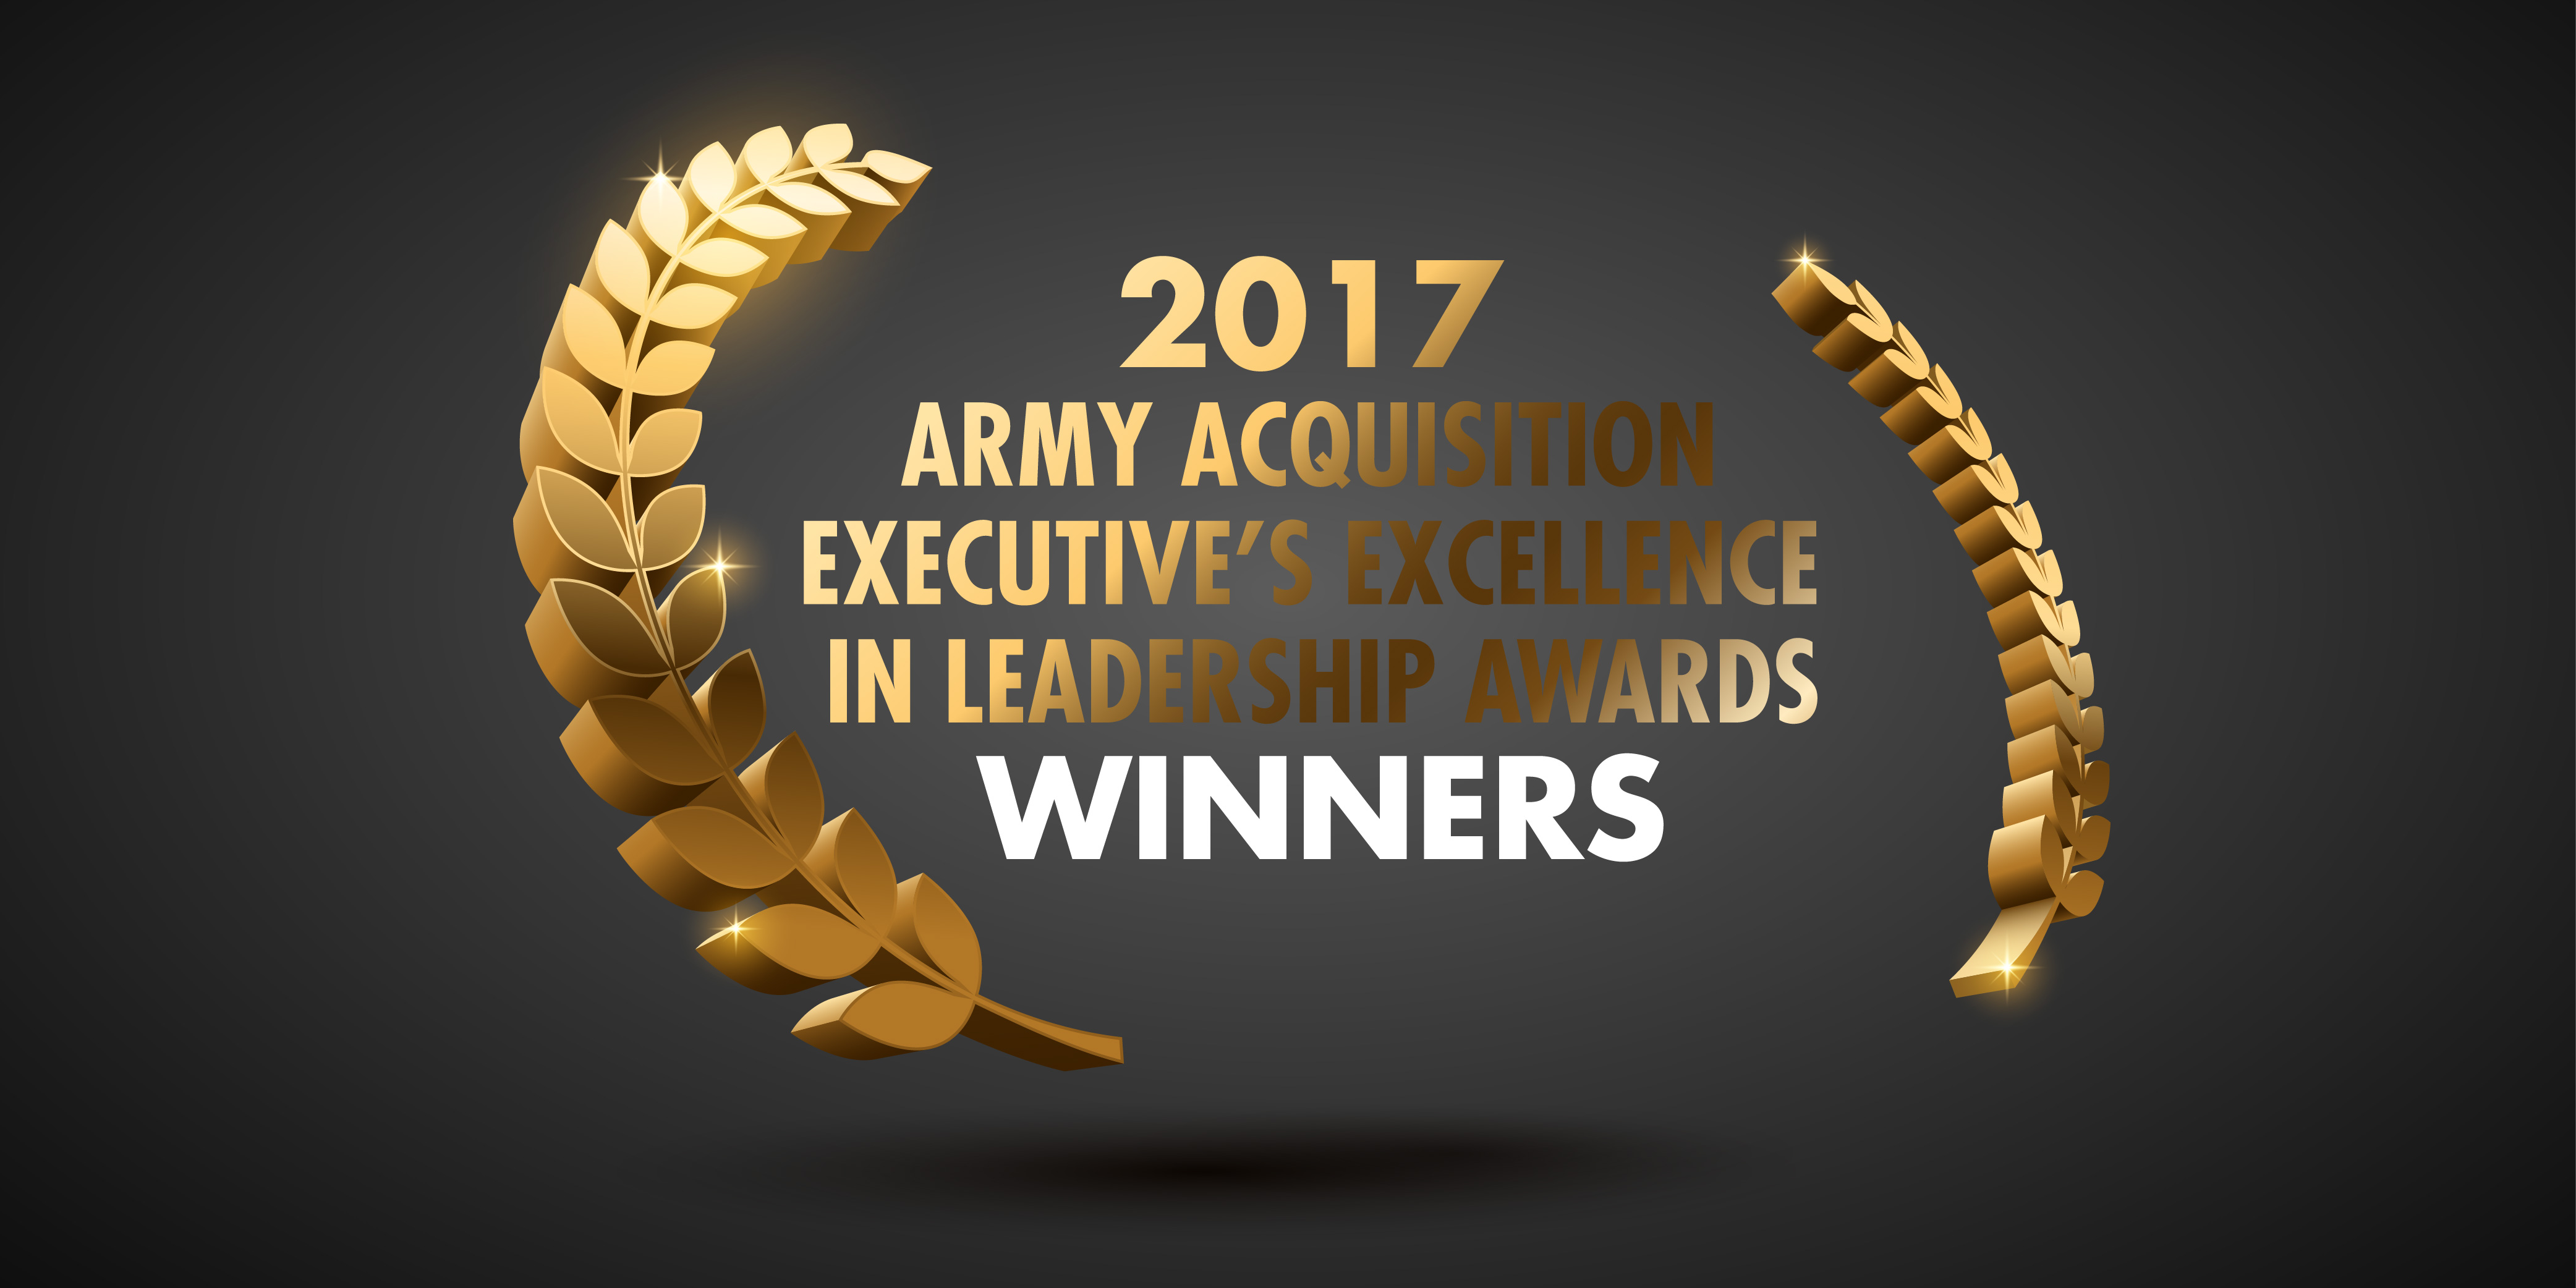 2017 Army acquisition award winners